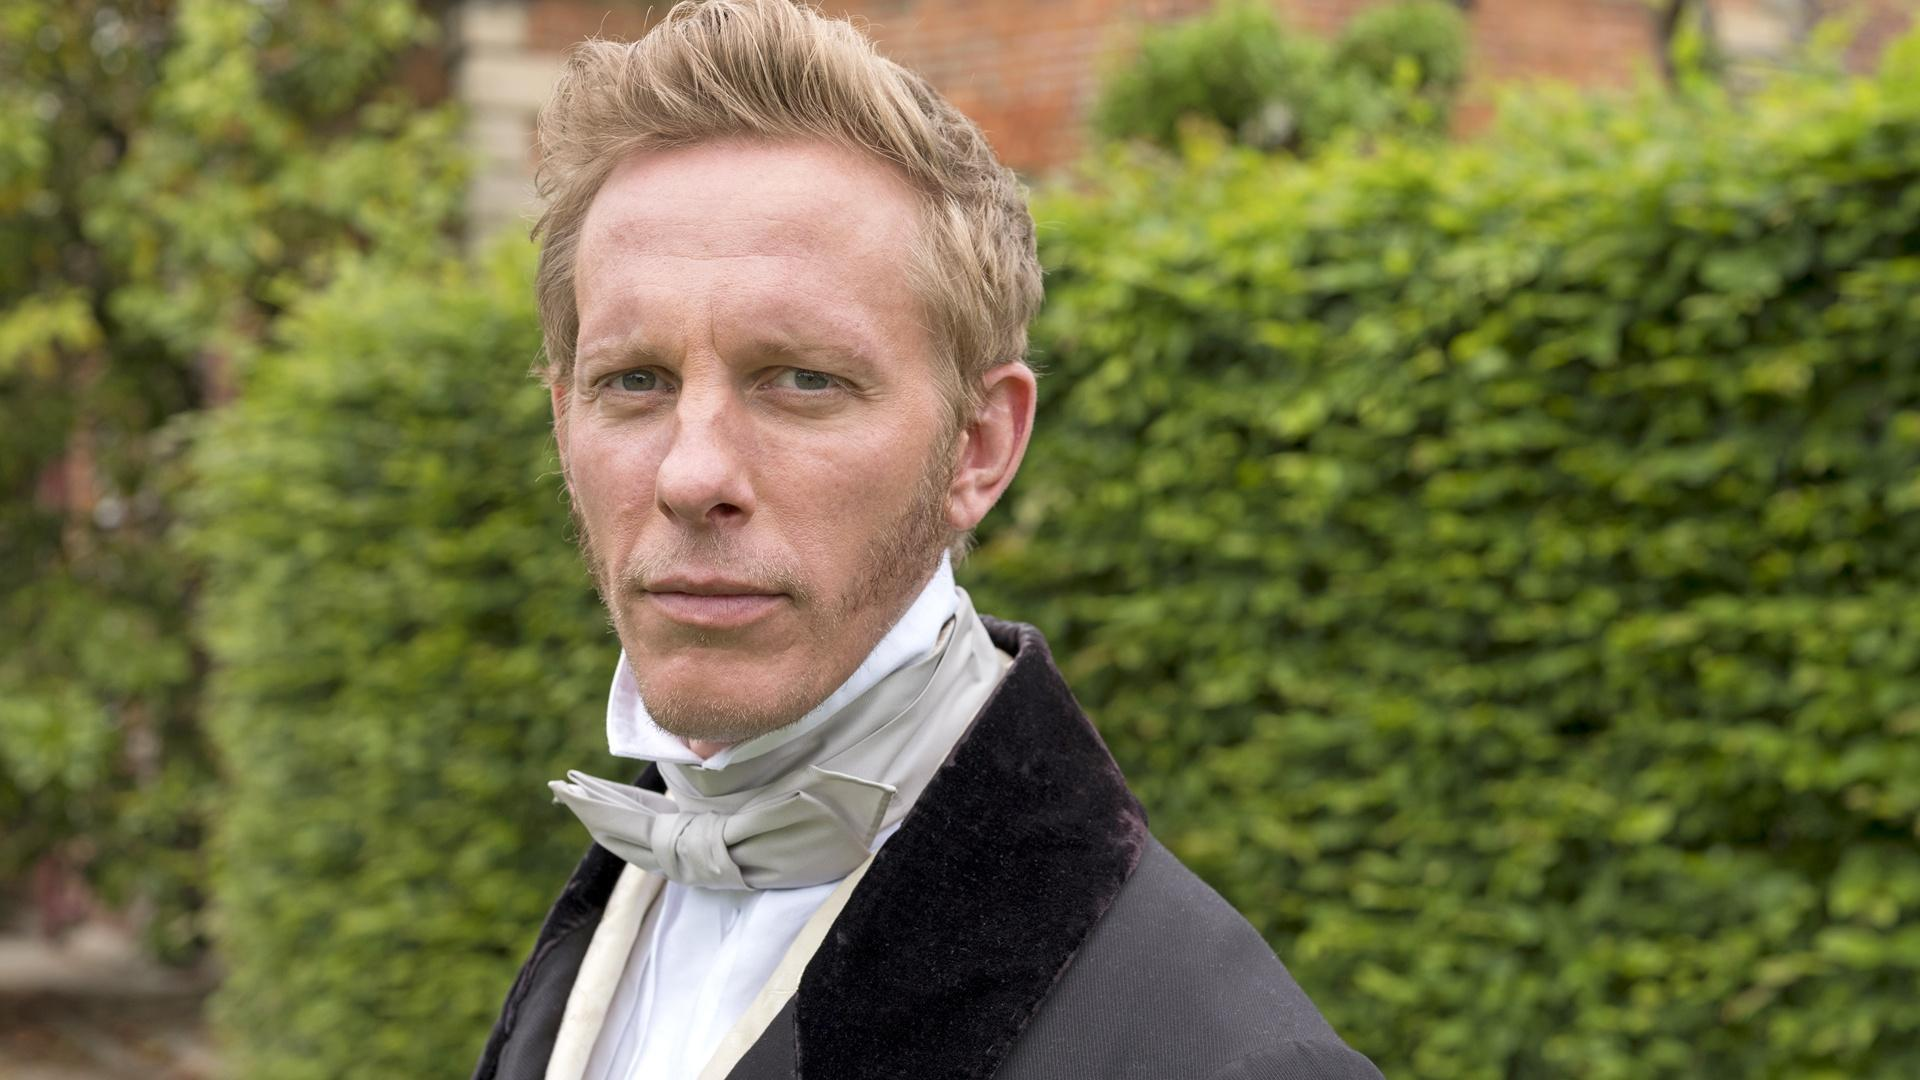 Laurence Fox is Lord Palmerston